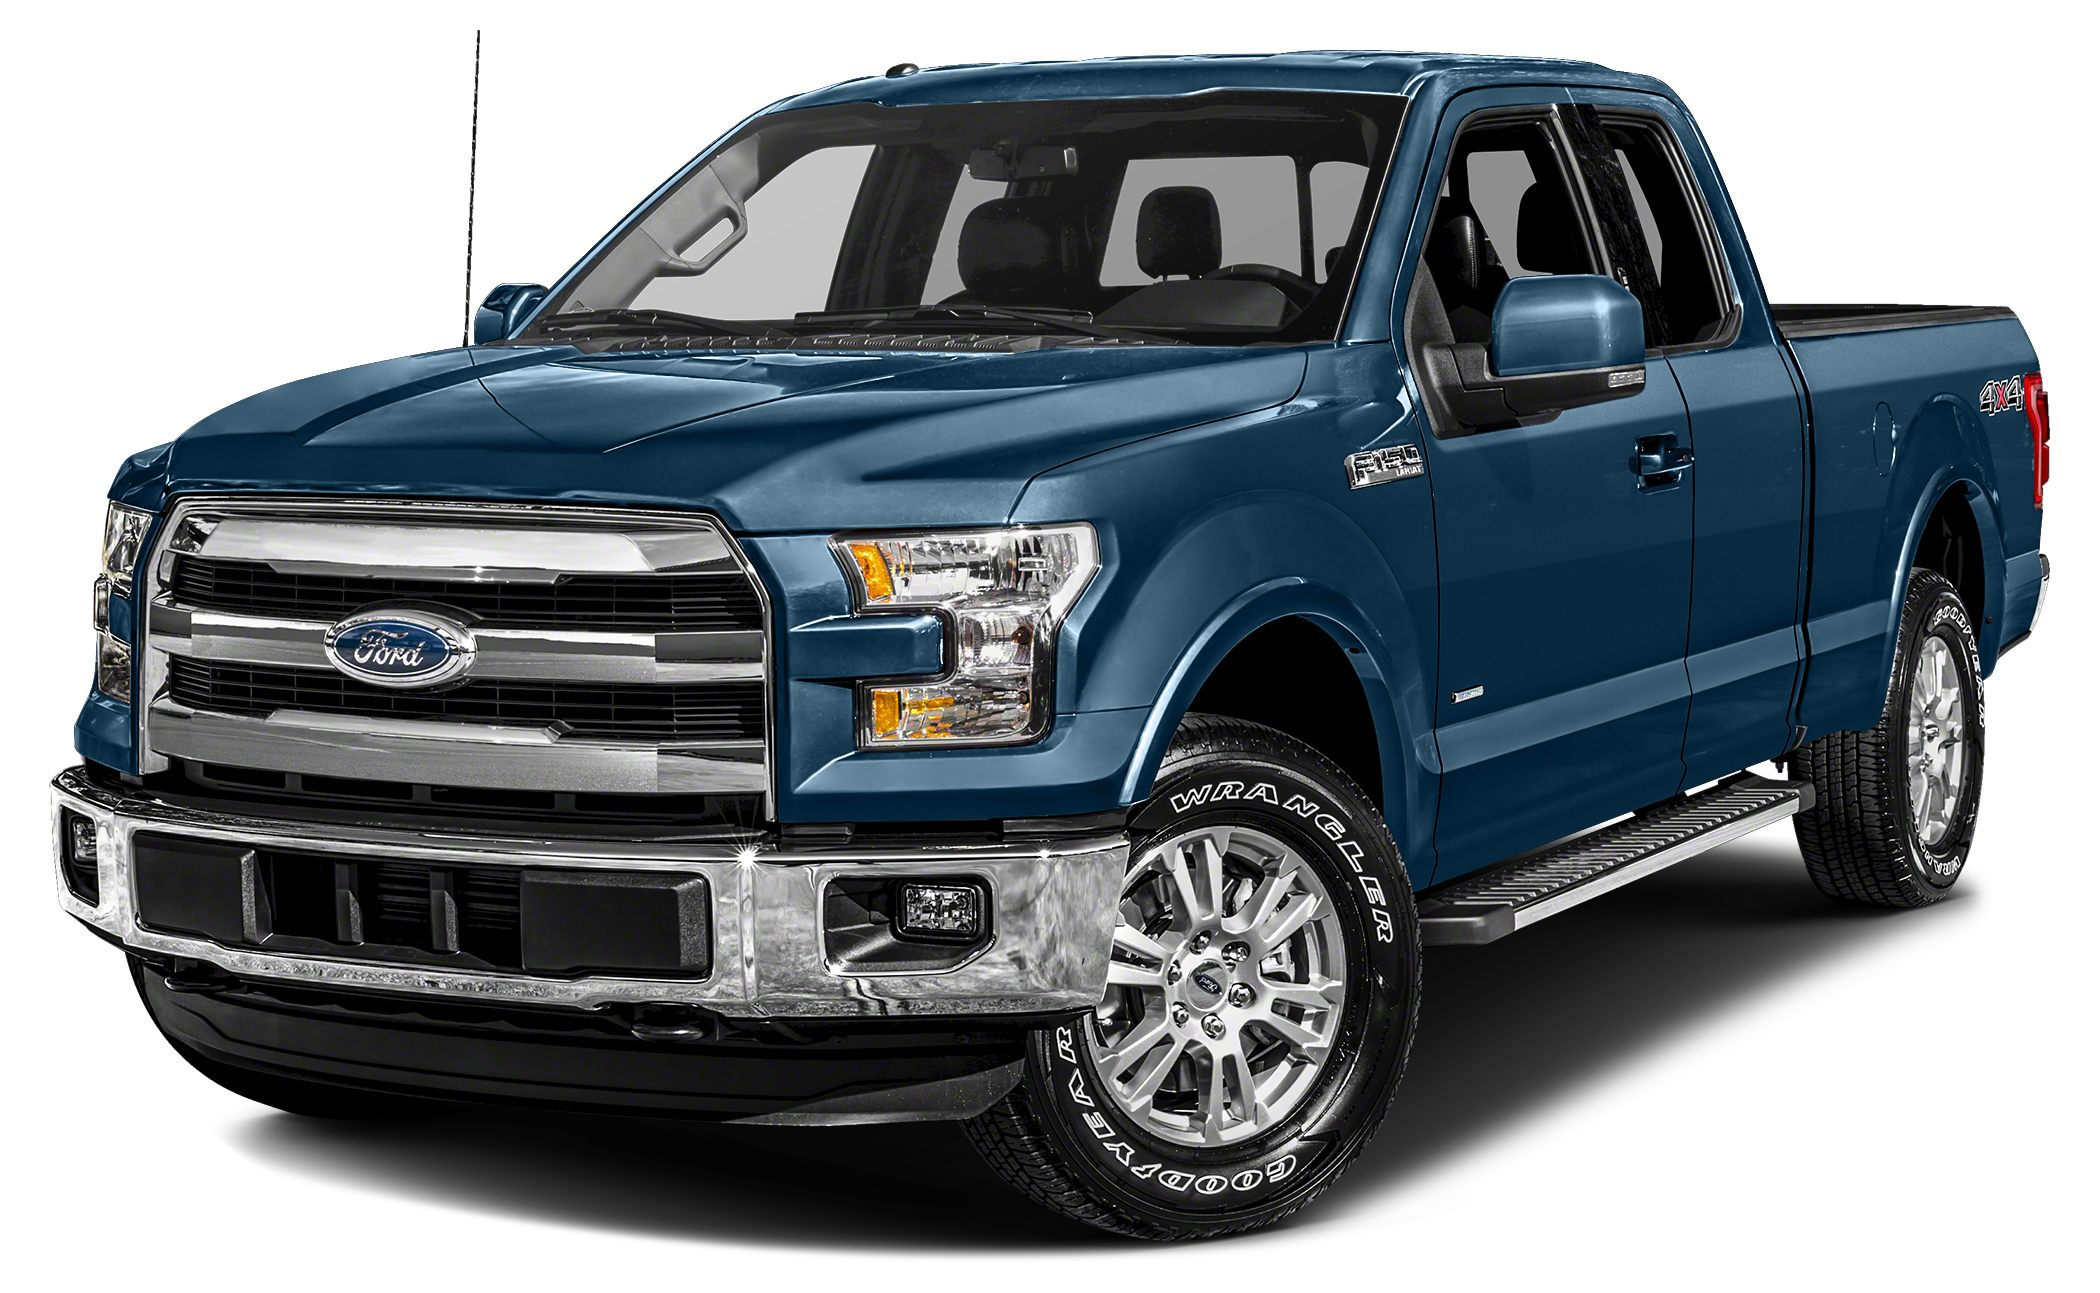 2015 Ford F-150 Lariat Ford F-150 capability is legendary in the world of hardworking pickups But